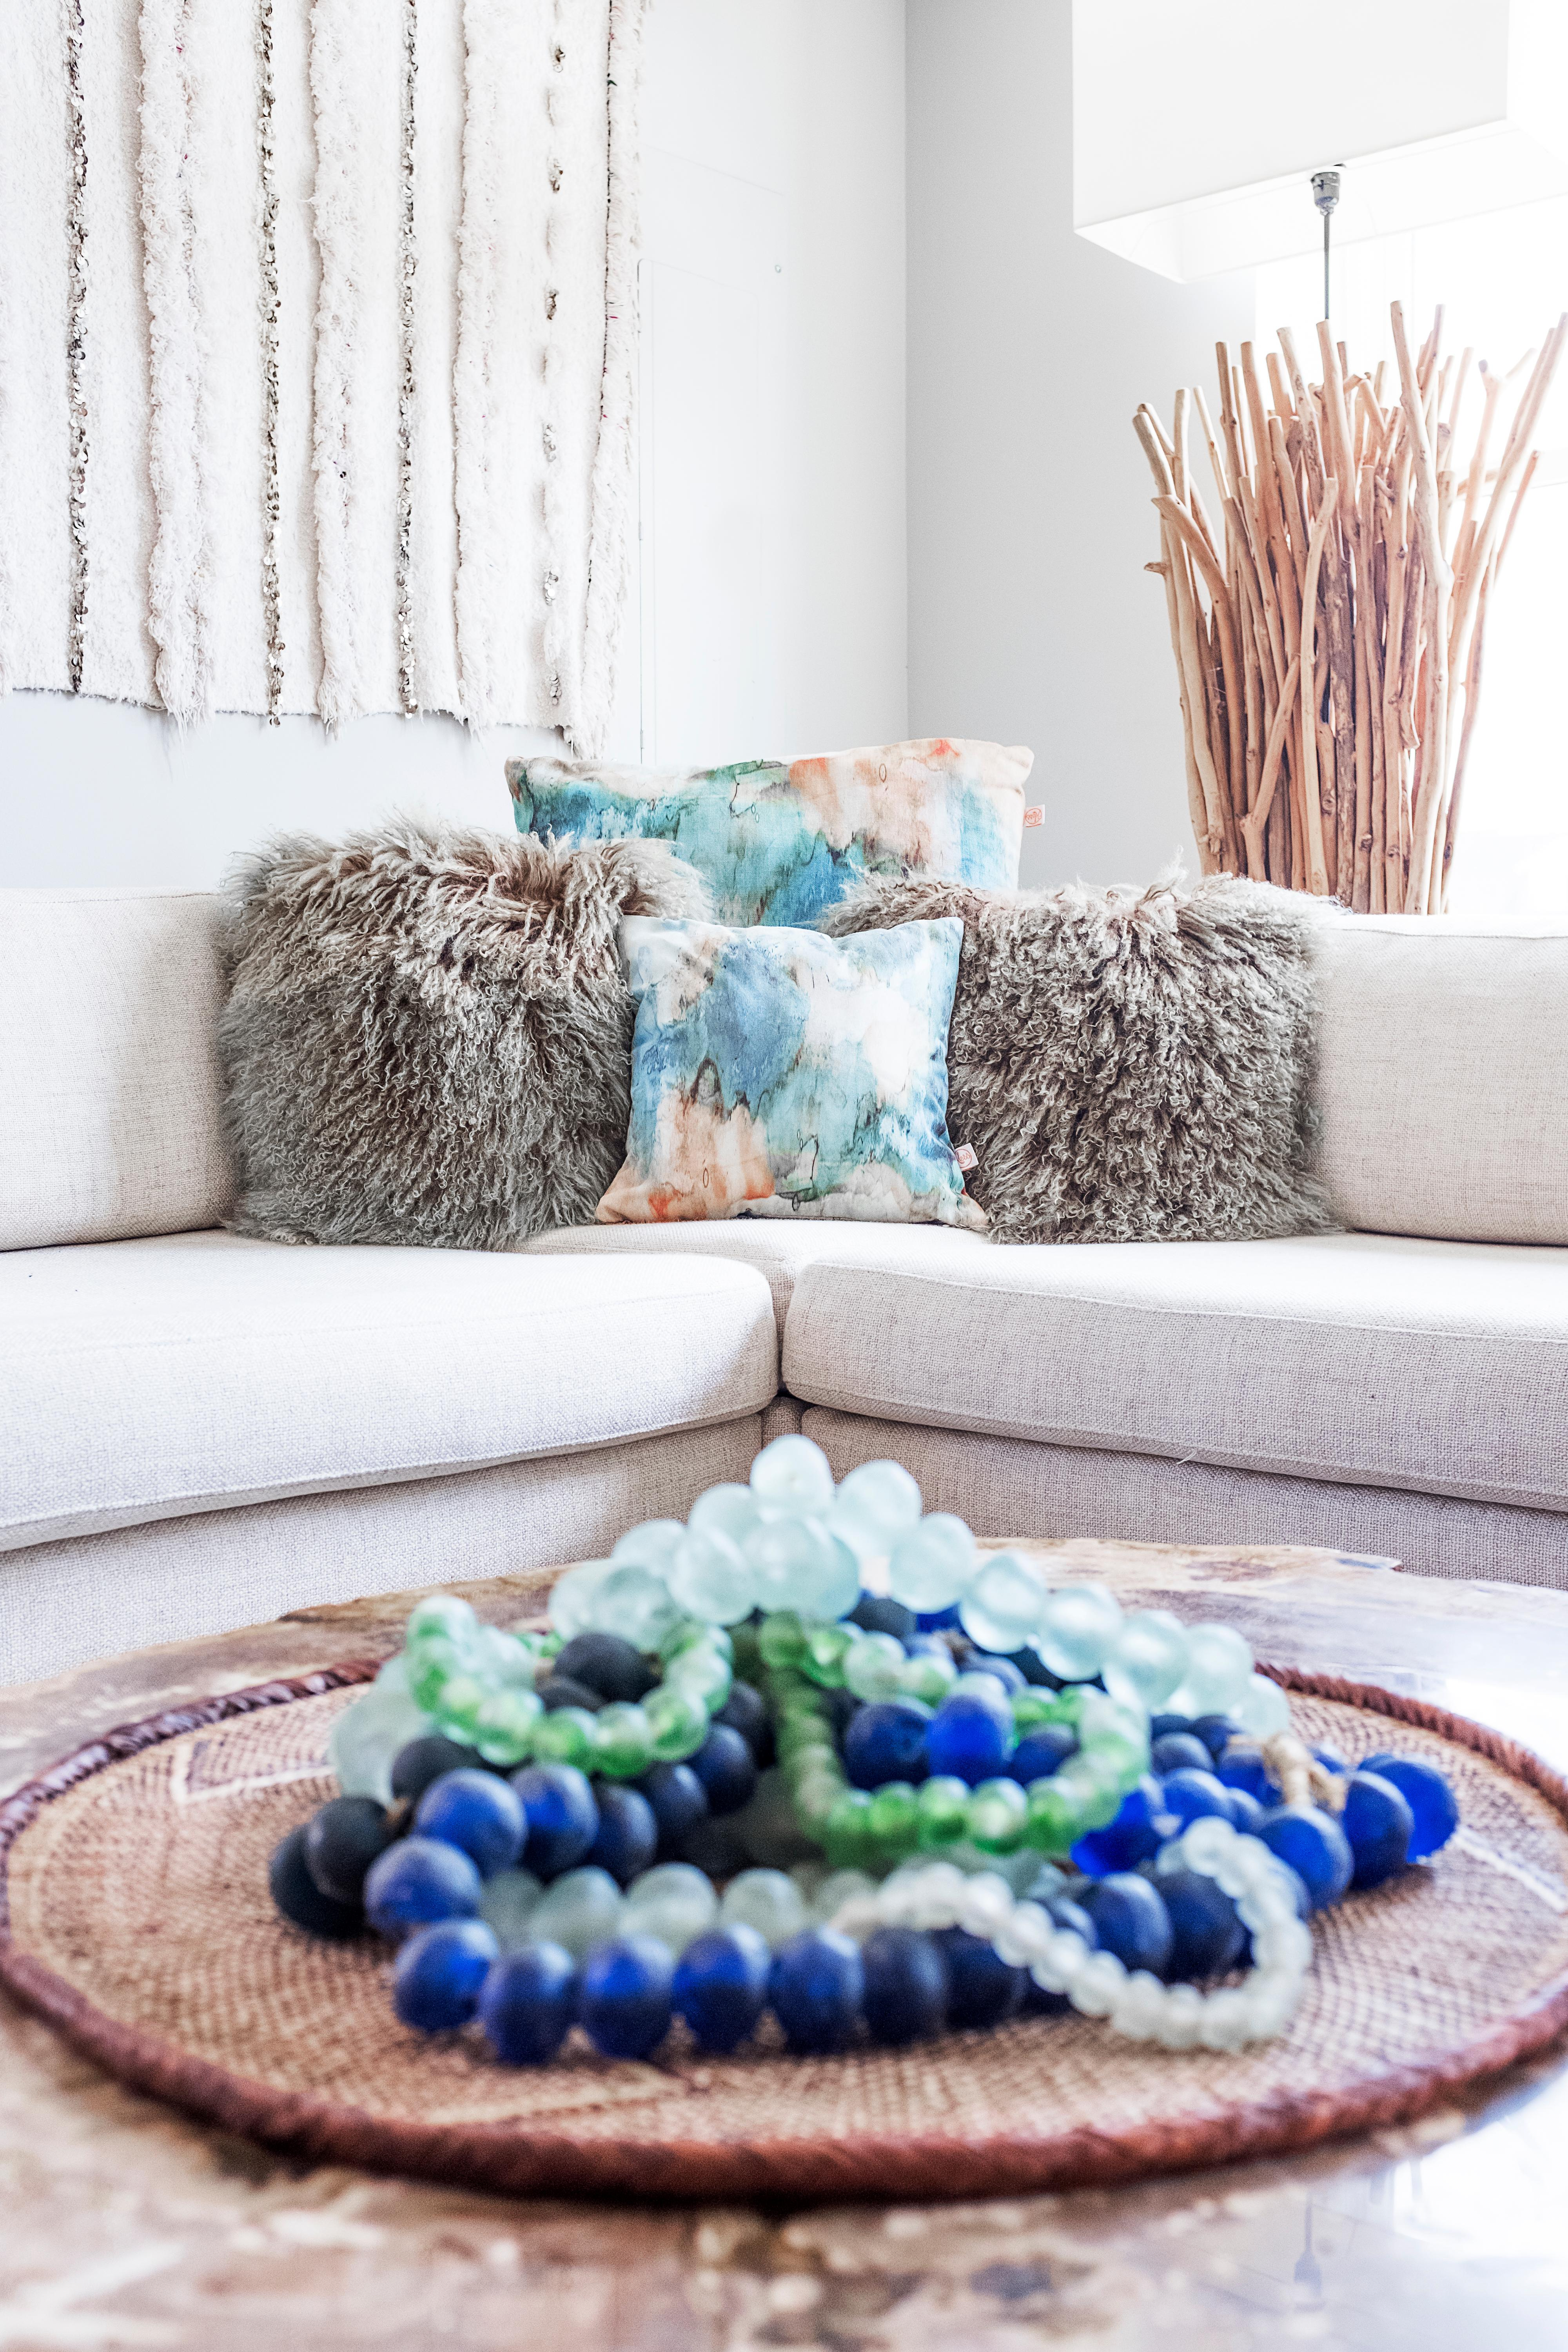 Summer is the perfect time to commit to a bit of color and bold pattern. (Image: Ashley Hafstead)